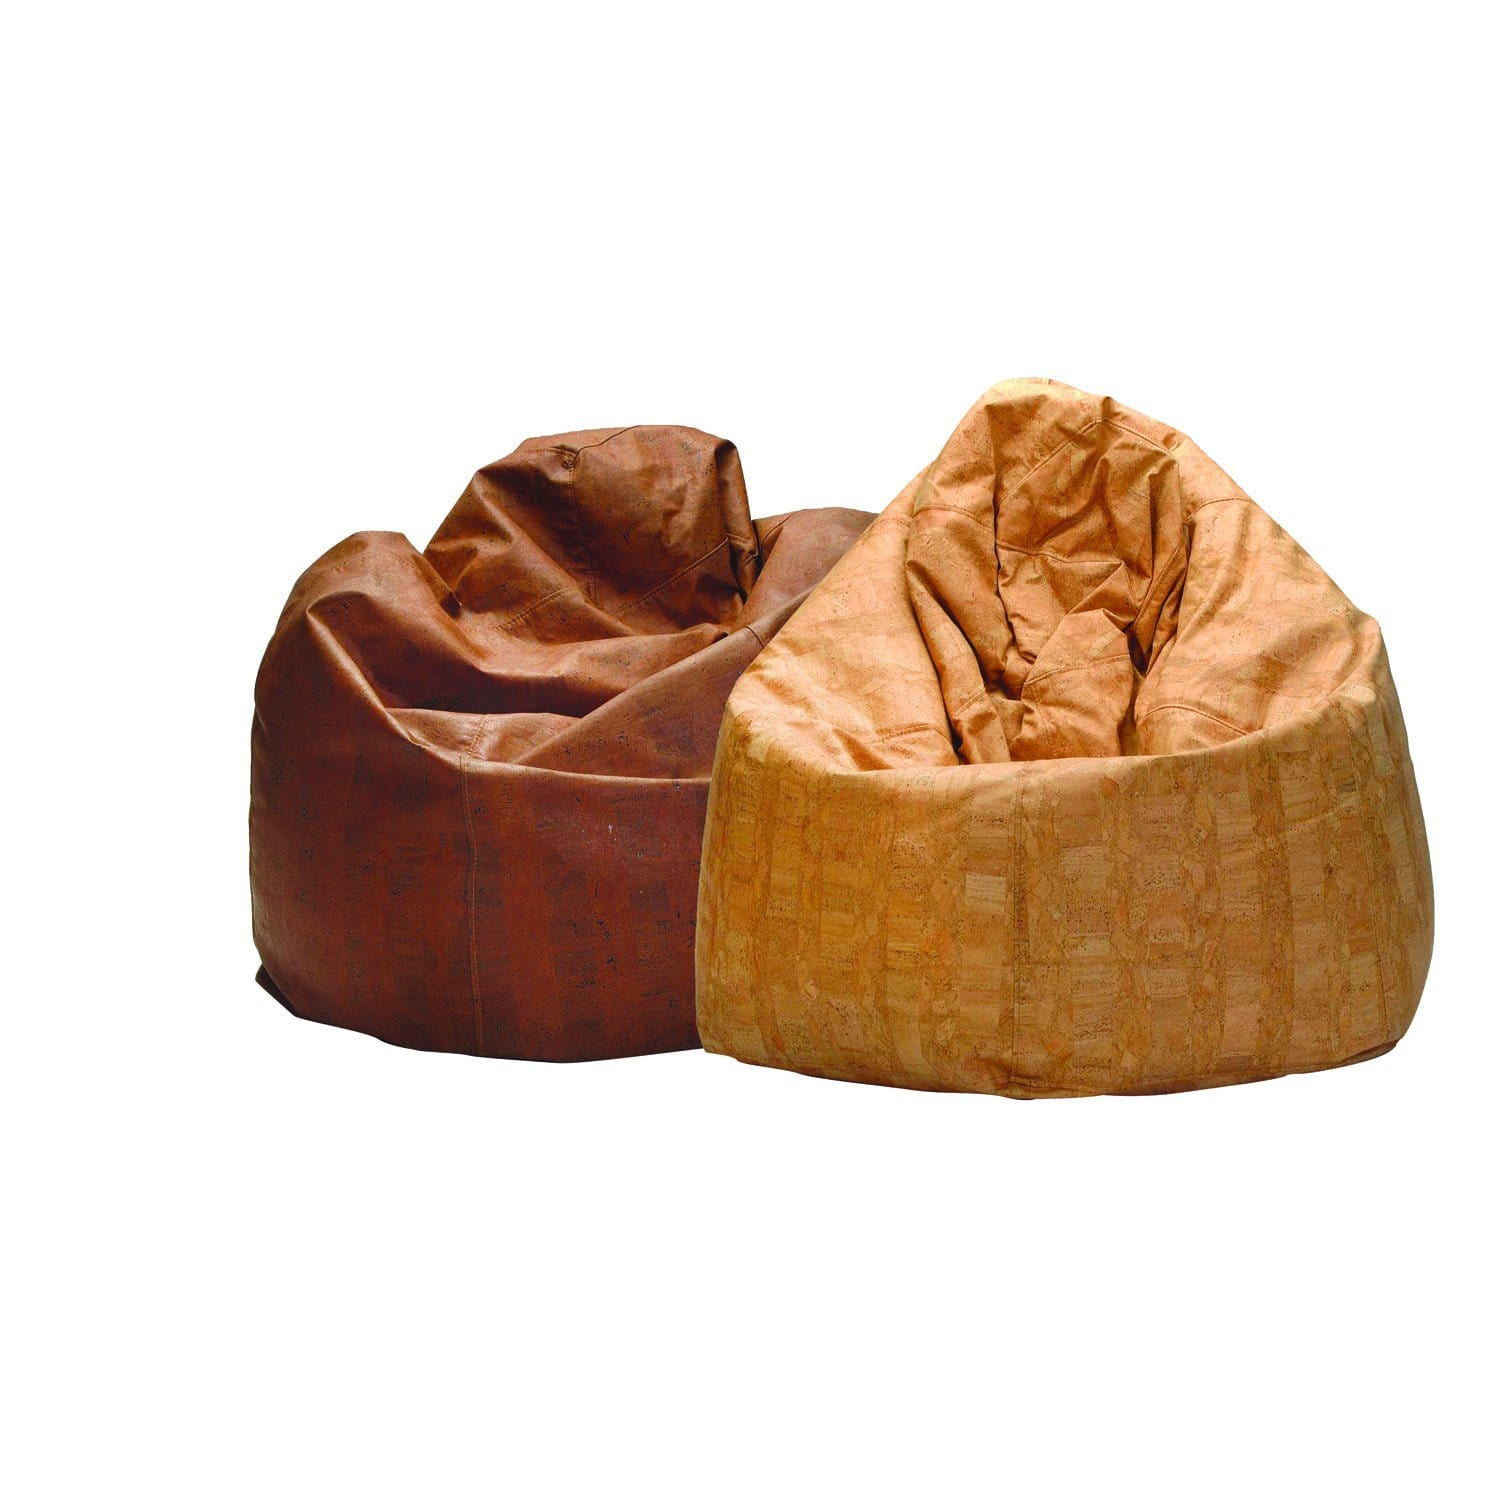 Big Pear Pouffe - Cork Beanbag Chair - Brown - Naturally Anti-Microbial Hypoallergenic Sustainable Eco-Friendly Cork